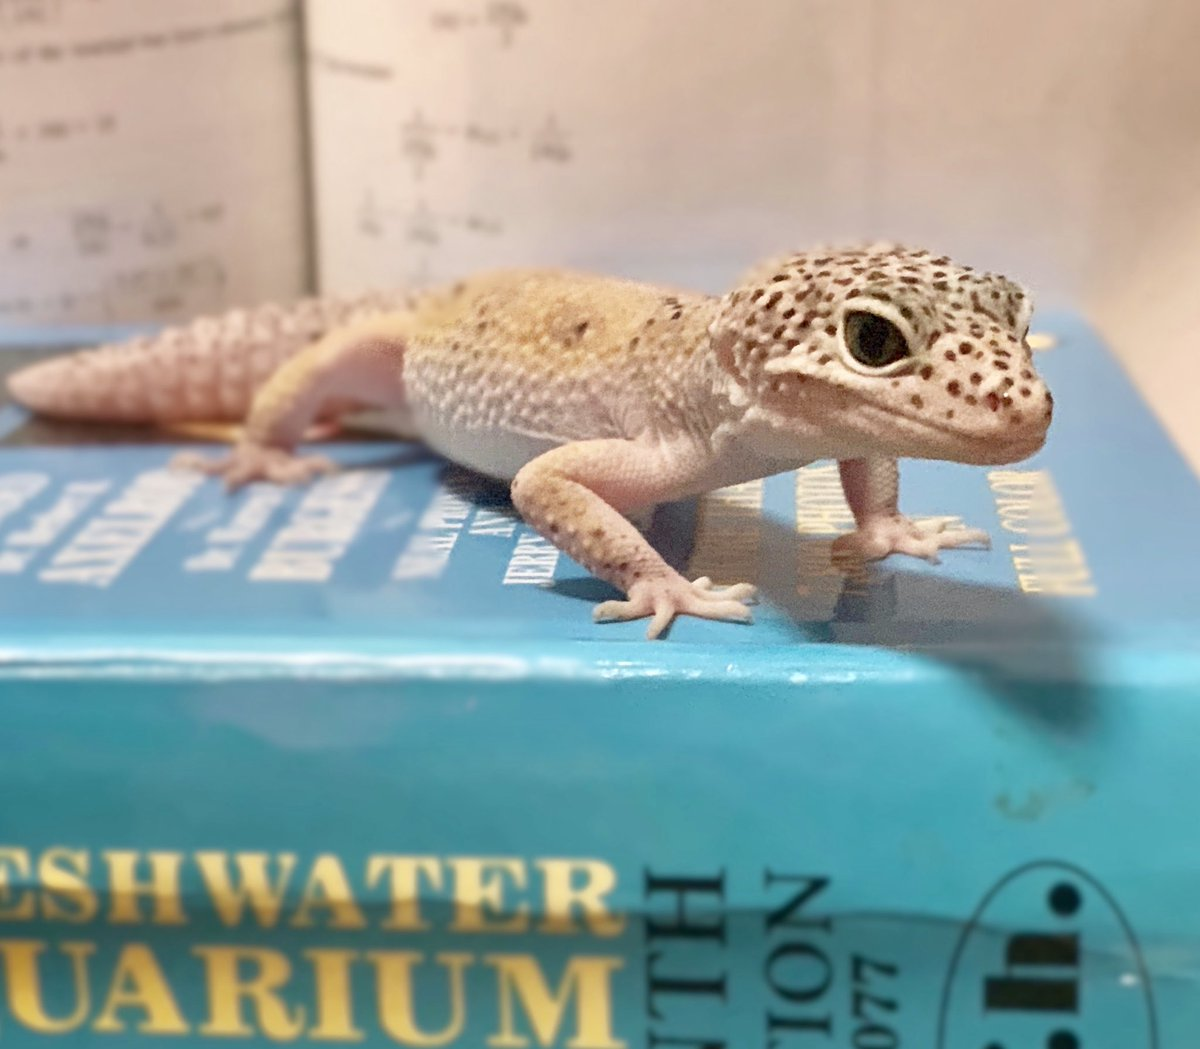 It's #WorldLizardDay and #BacktoSchool for Broward County! Leo our Leopard Gecko celebrated by hitting the books.  <br>http://pic.twitter.com/0tYr2DPEmU